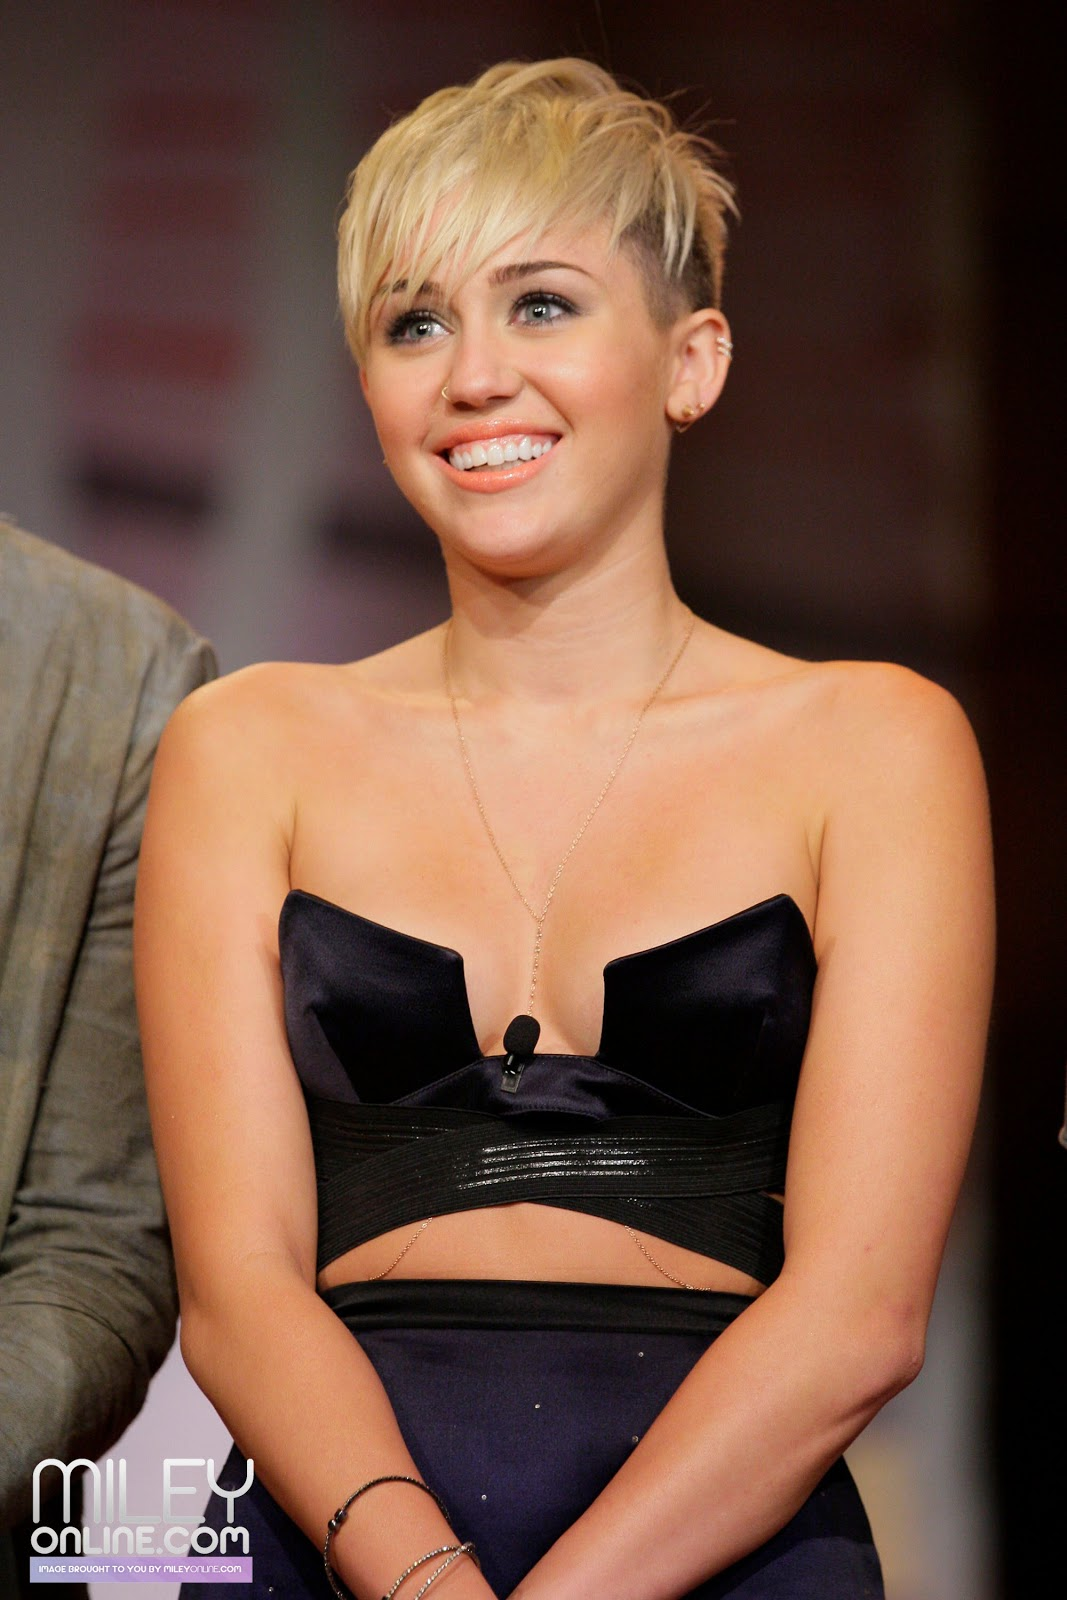 http://4.bp.blogspot.com/-uA8Q7jmVb5A/UIj3HuJxzlI/AAAAAAAAjPc/rXqRco_vzHU/s1600/Miley+Cyrus+Great+Cleavage+-+on+The+Tonight+Show+with+Jay+Leno+-+October+12%252C+2012+4.jpg